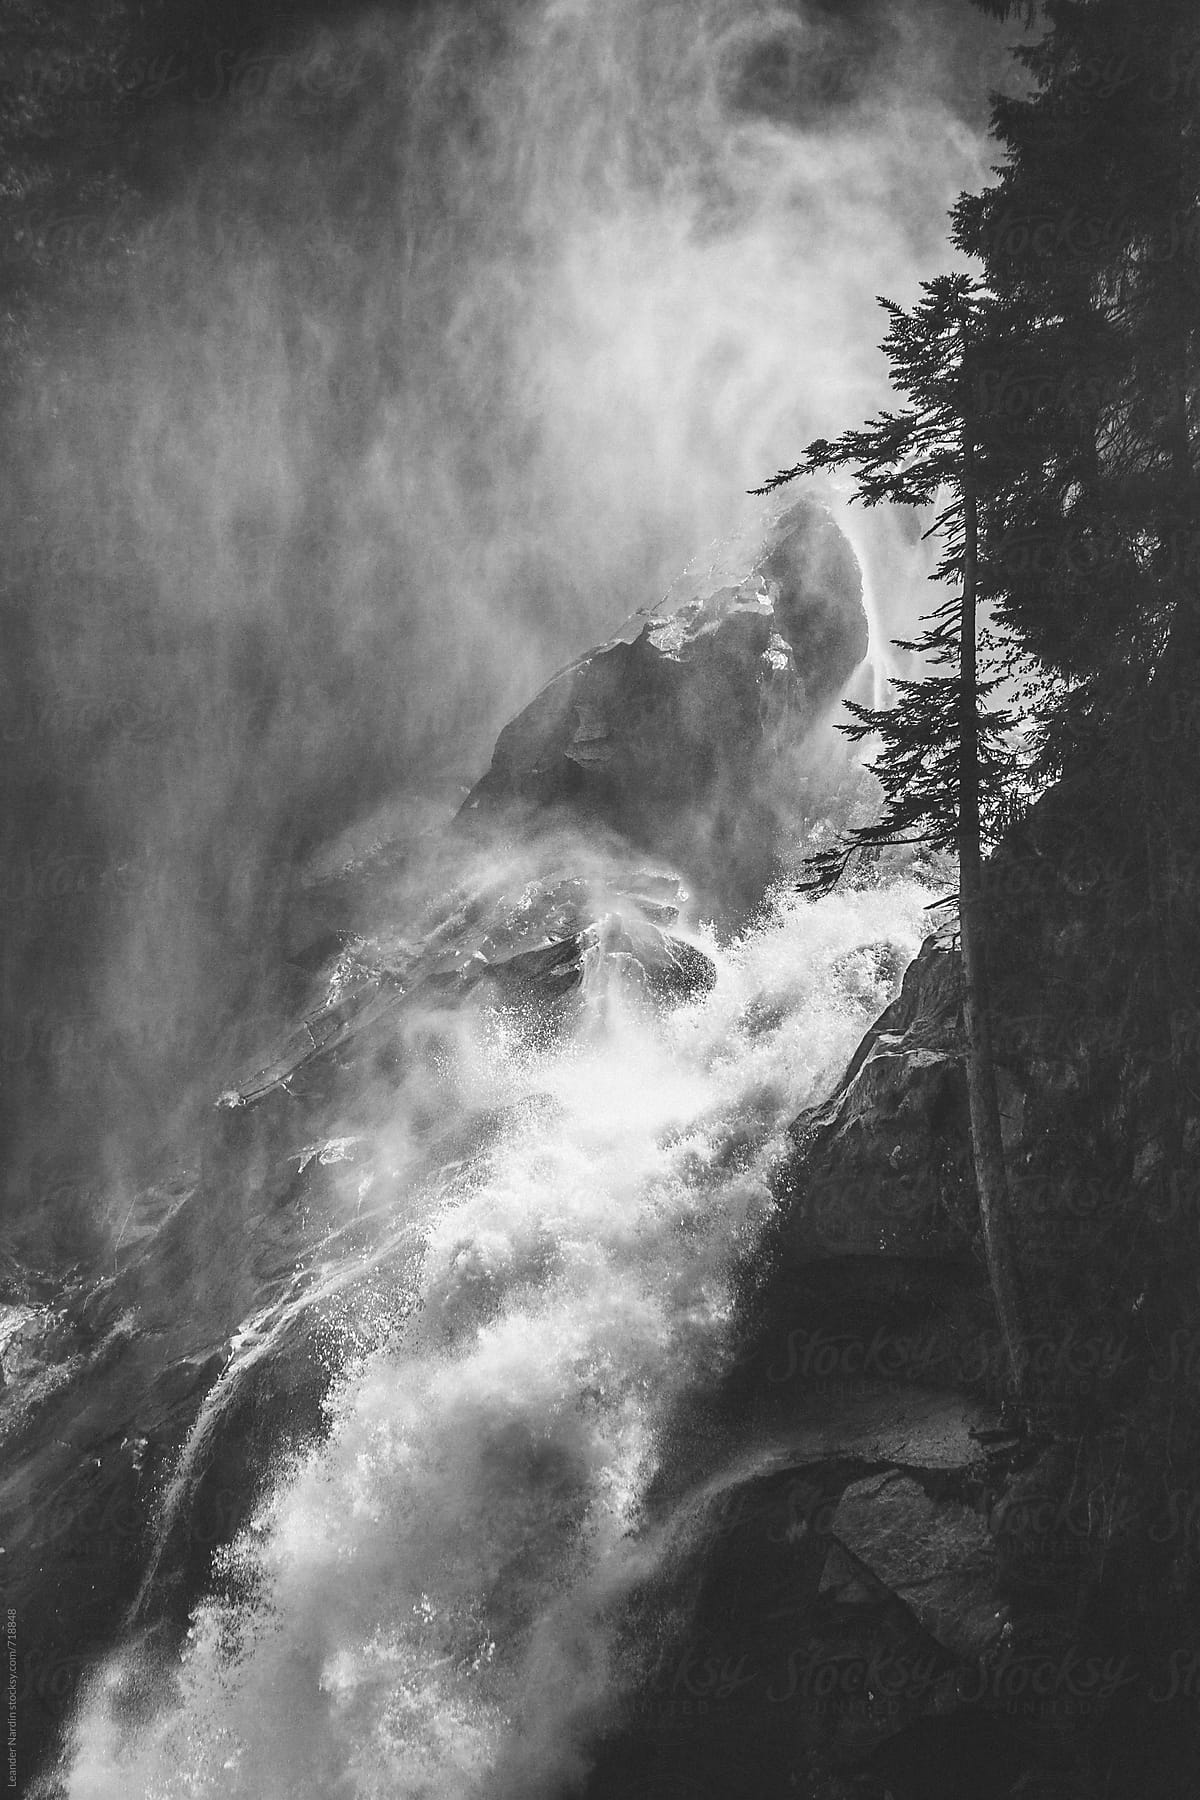 Detail of a powerful river flowing down a mountain black and white